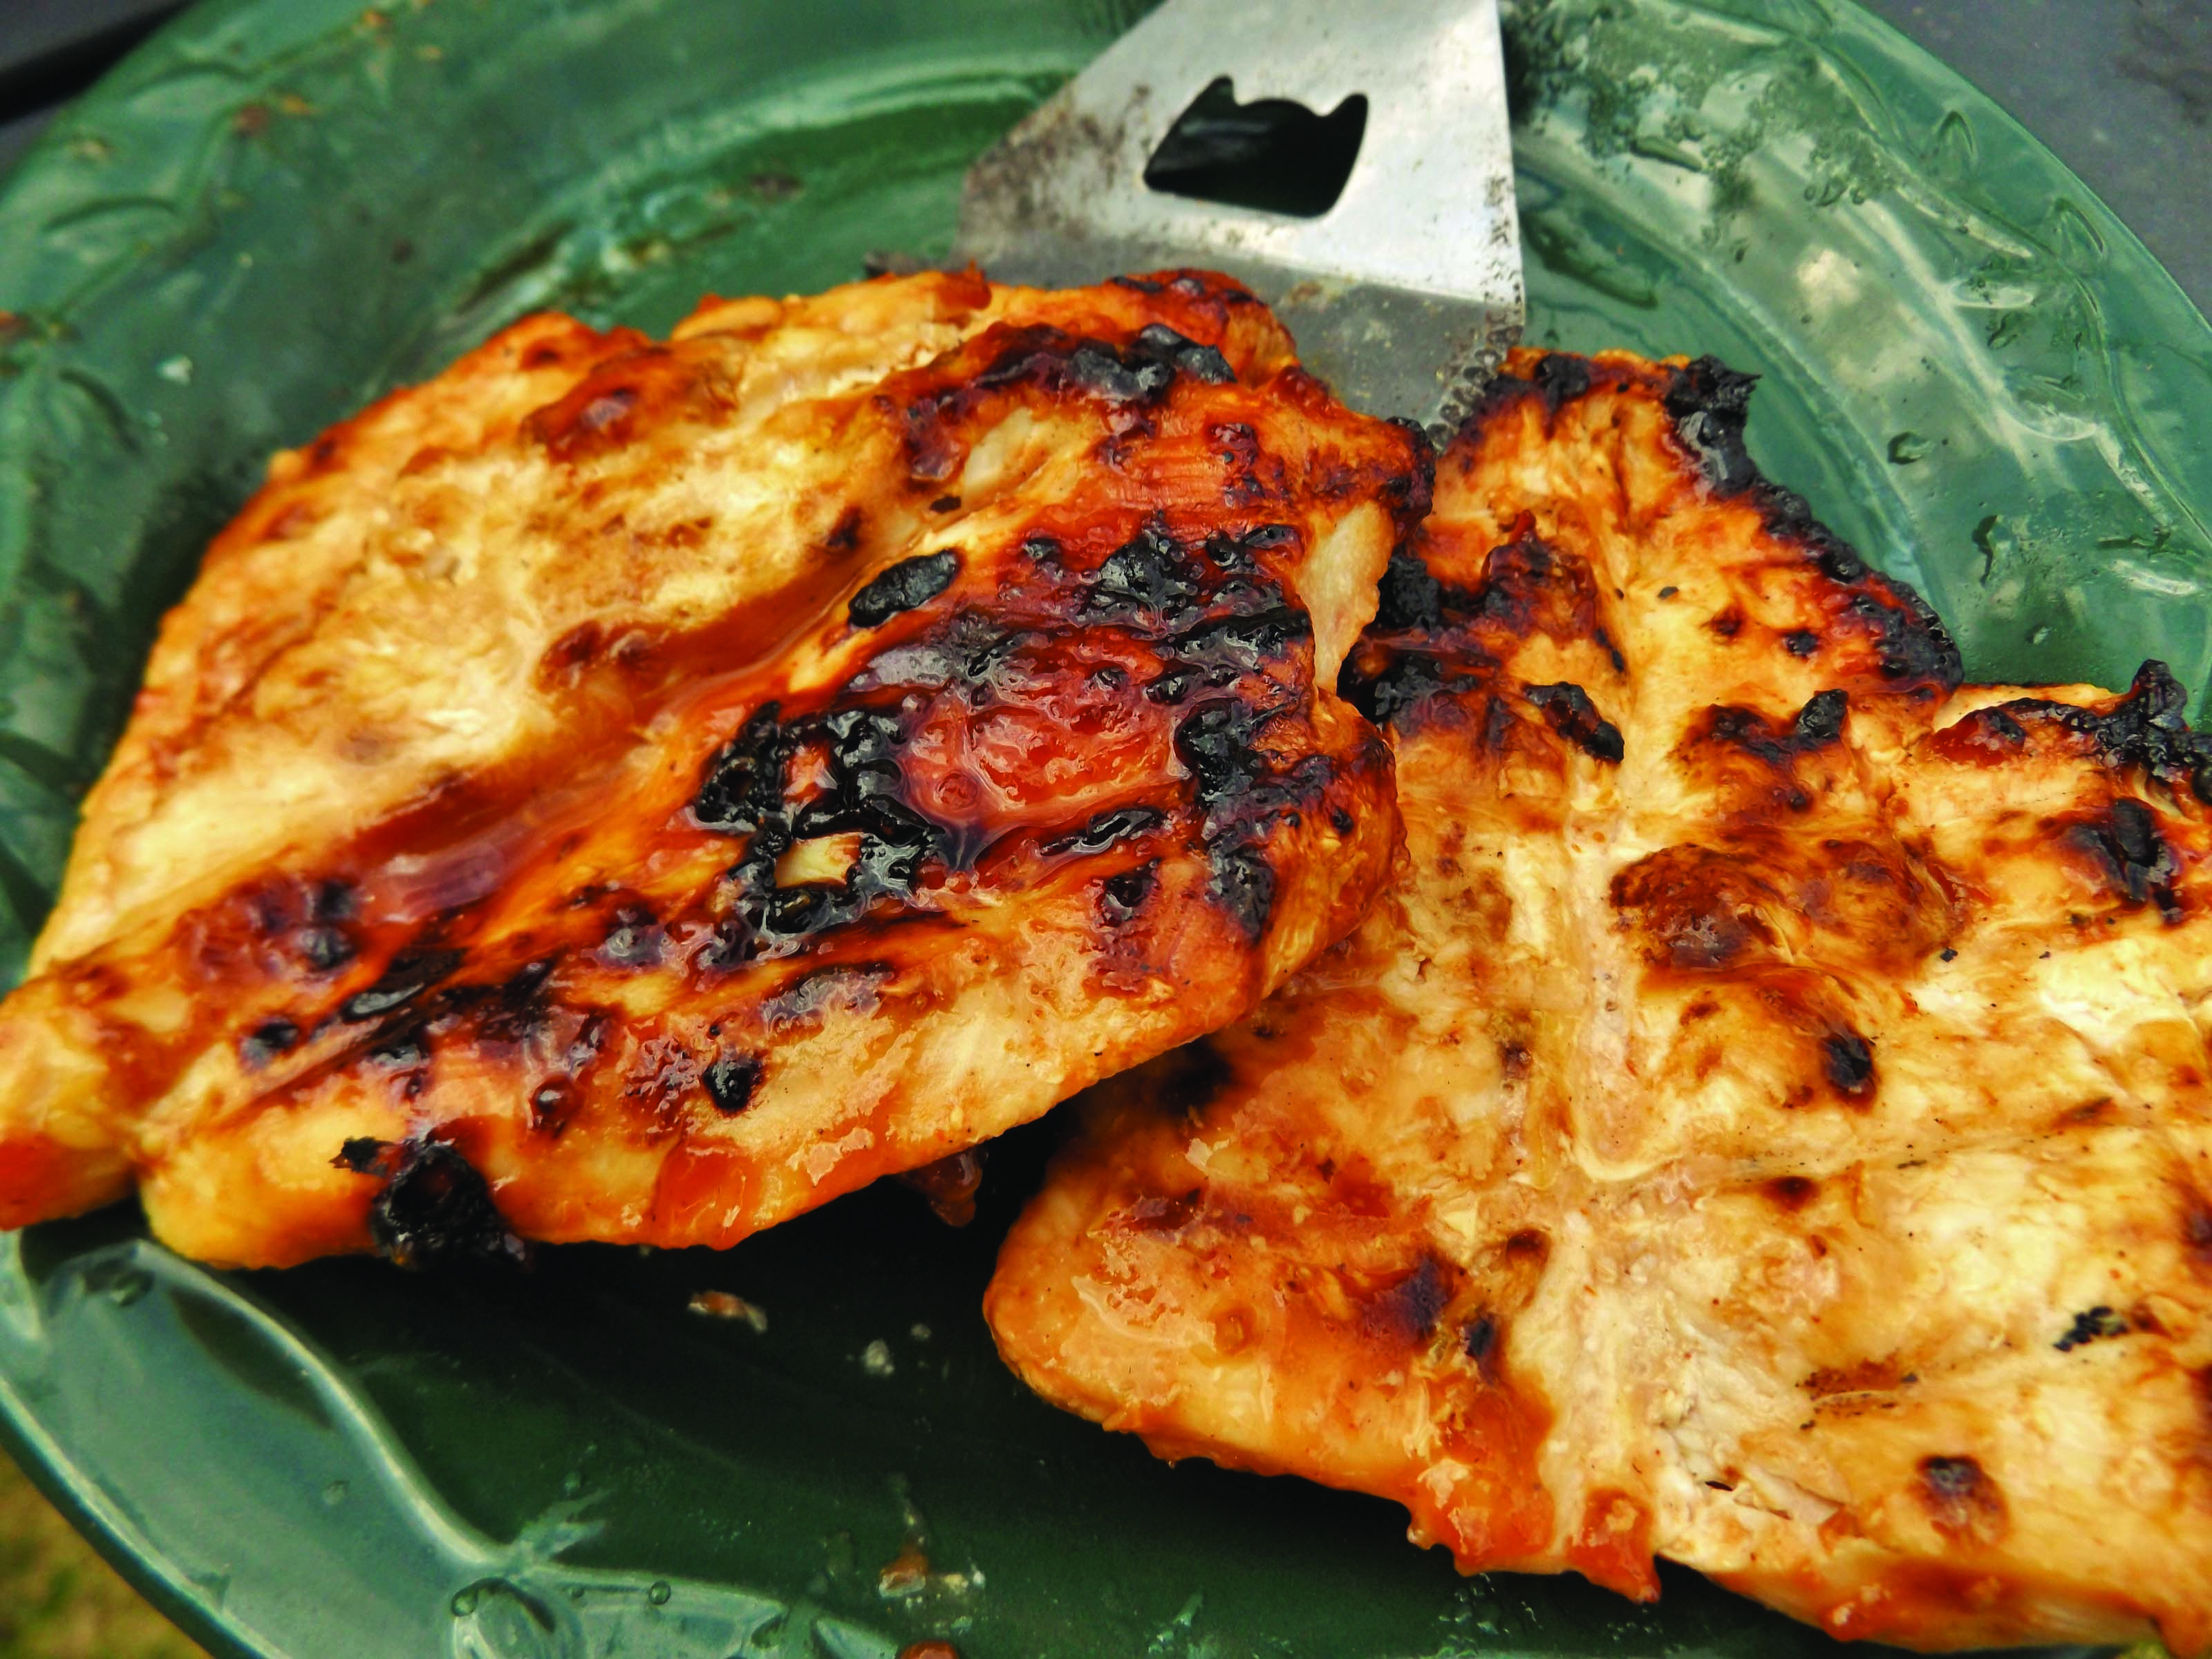 Jacks Barbecue Sauce is a tangy compliment to outdoor grilling season for chops, chicken or steak. SUBMITTED PHOTO